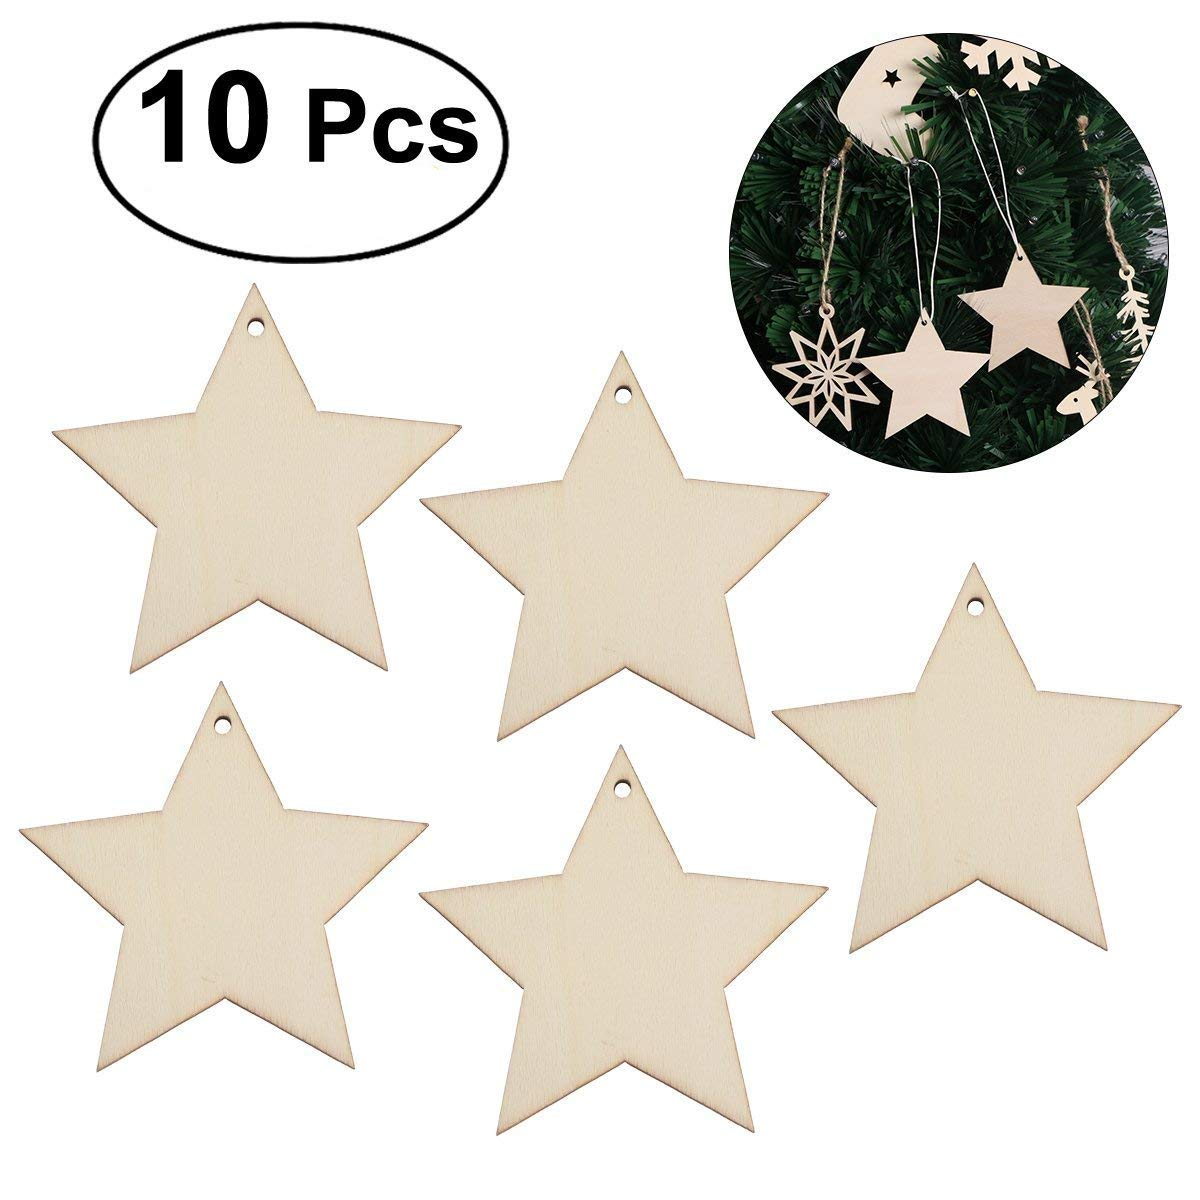 Tinksky Christmas Wooden Hanging Decor Embellishments Christmas Tree Home Wall Decor Christmas Ornaments DIY 10pcs (Star)